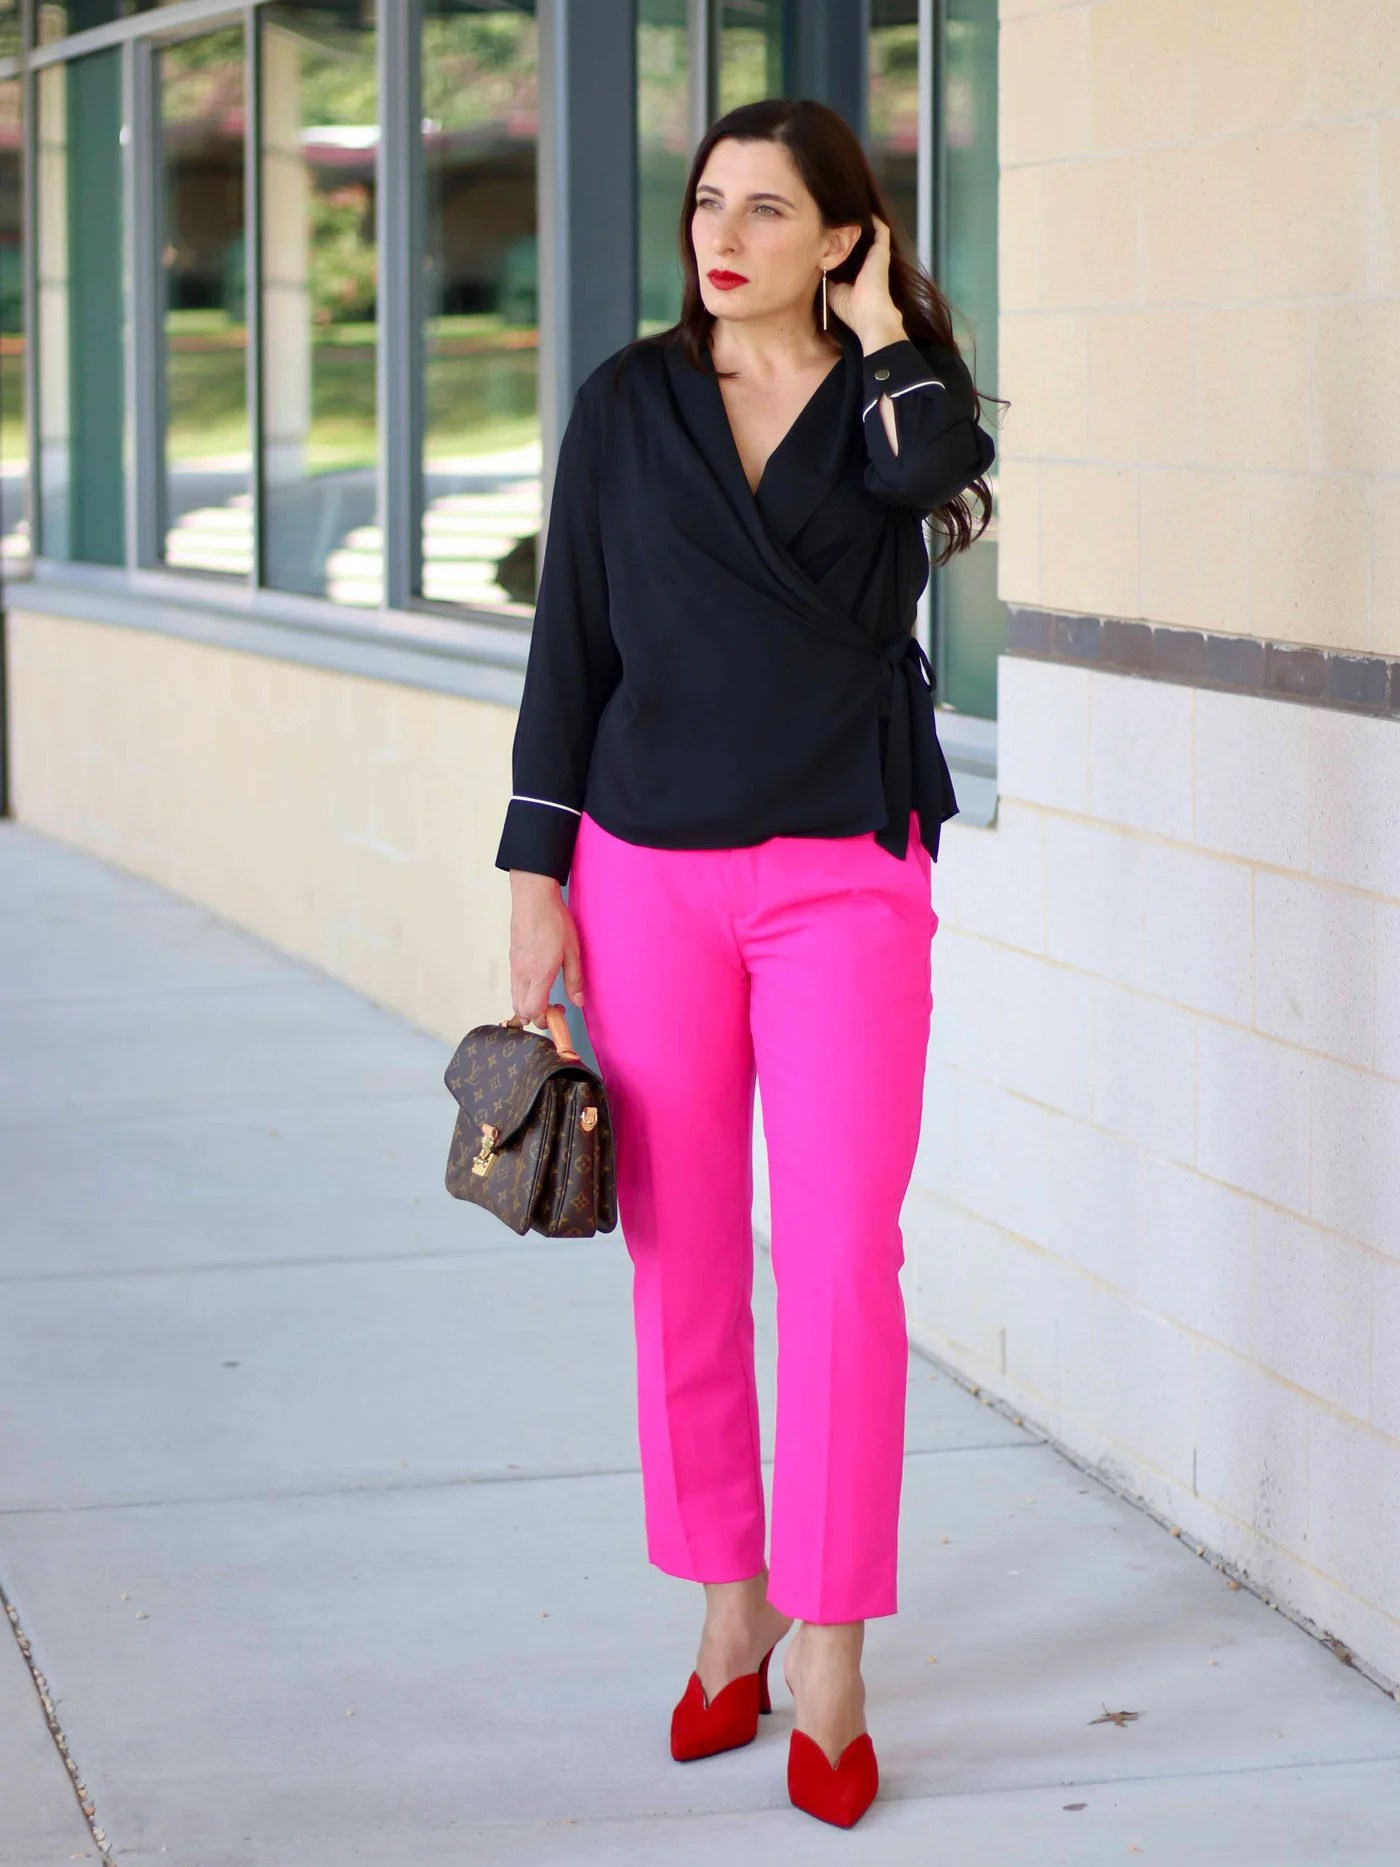 Are hot pink pants something is